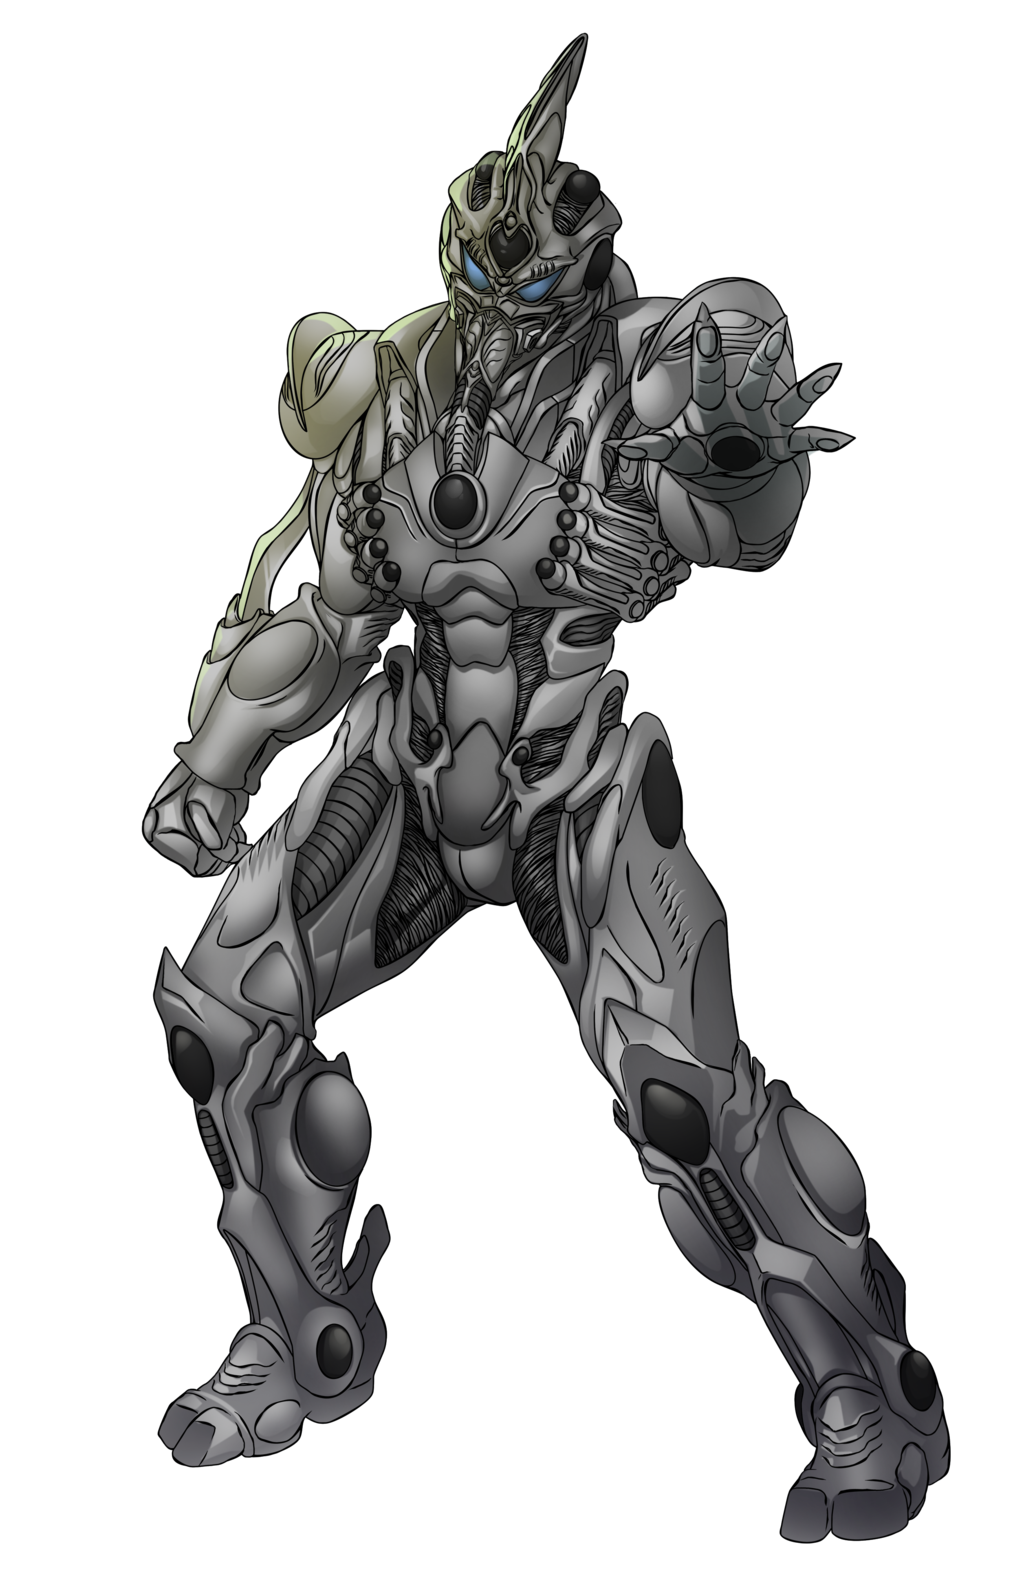 Prometheus drawing sculptural. Guyver by tyrantking on